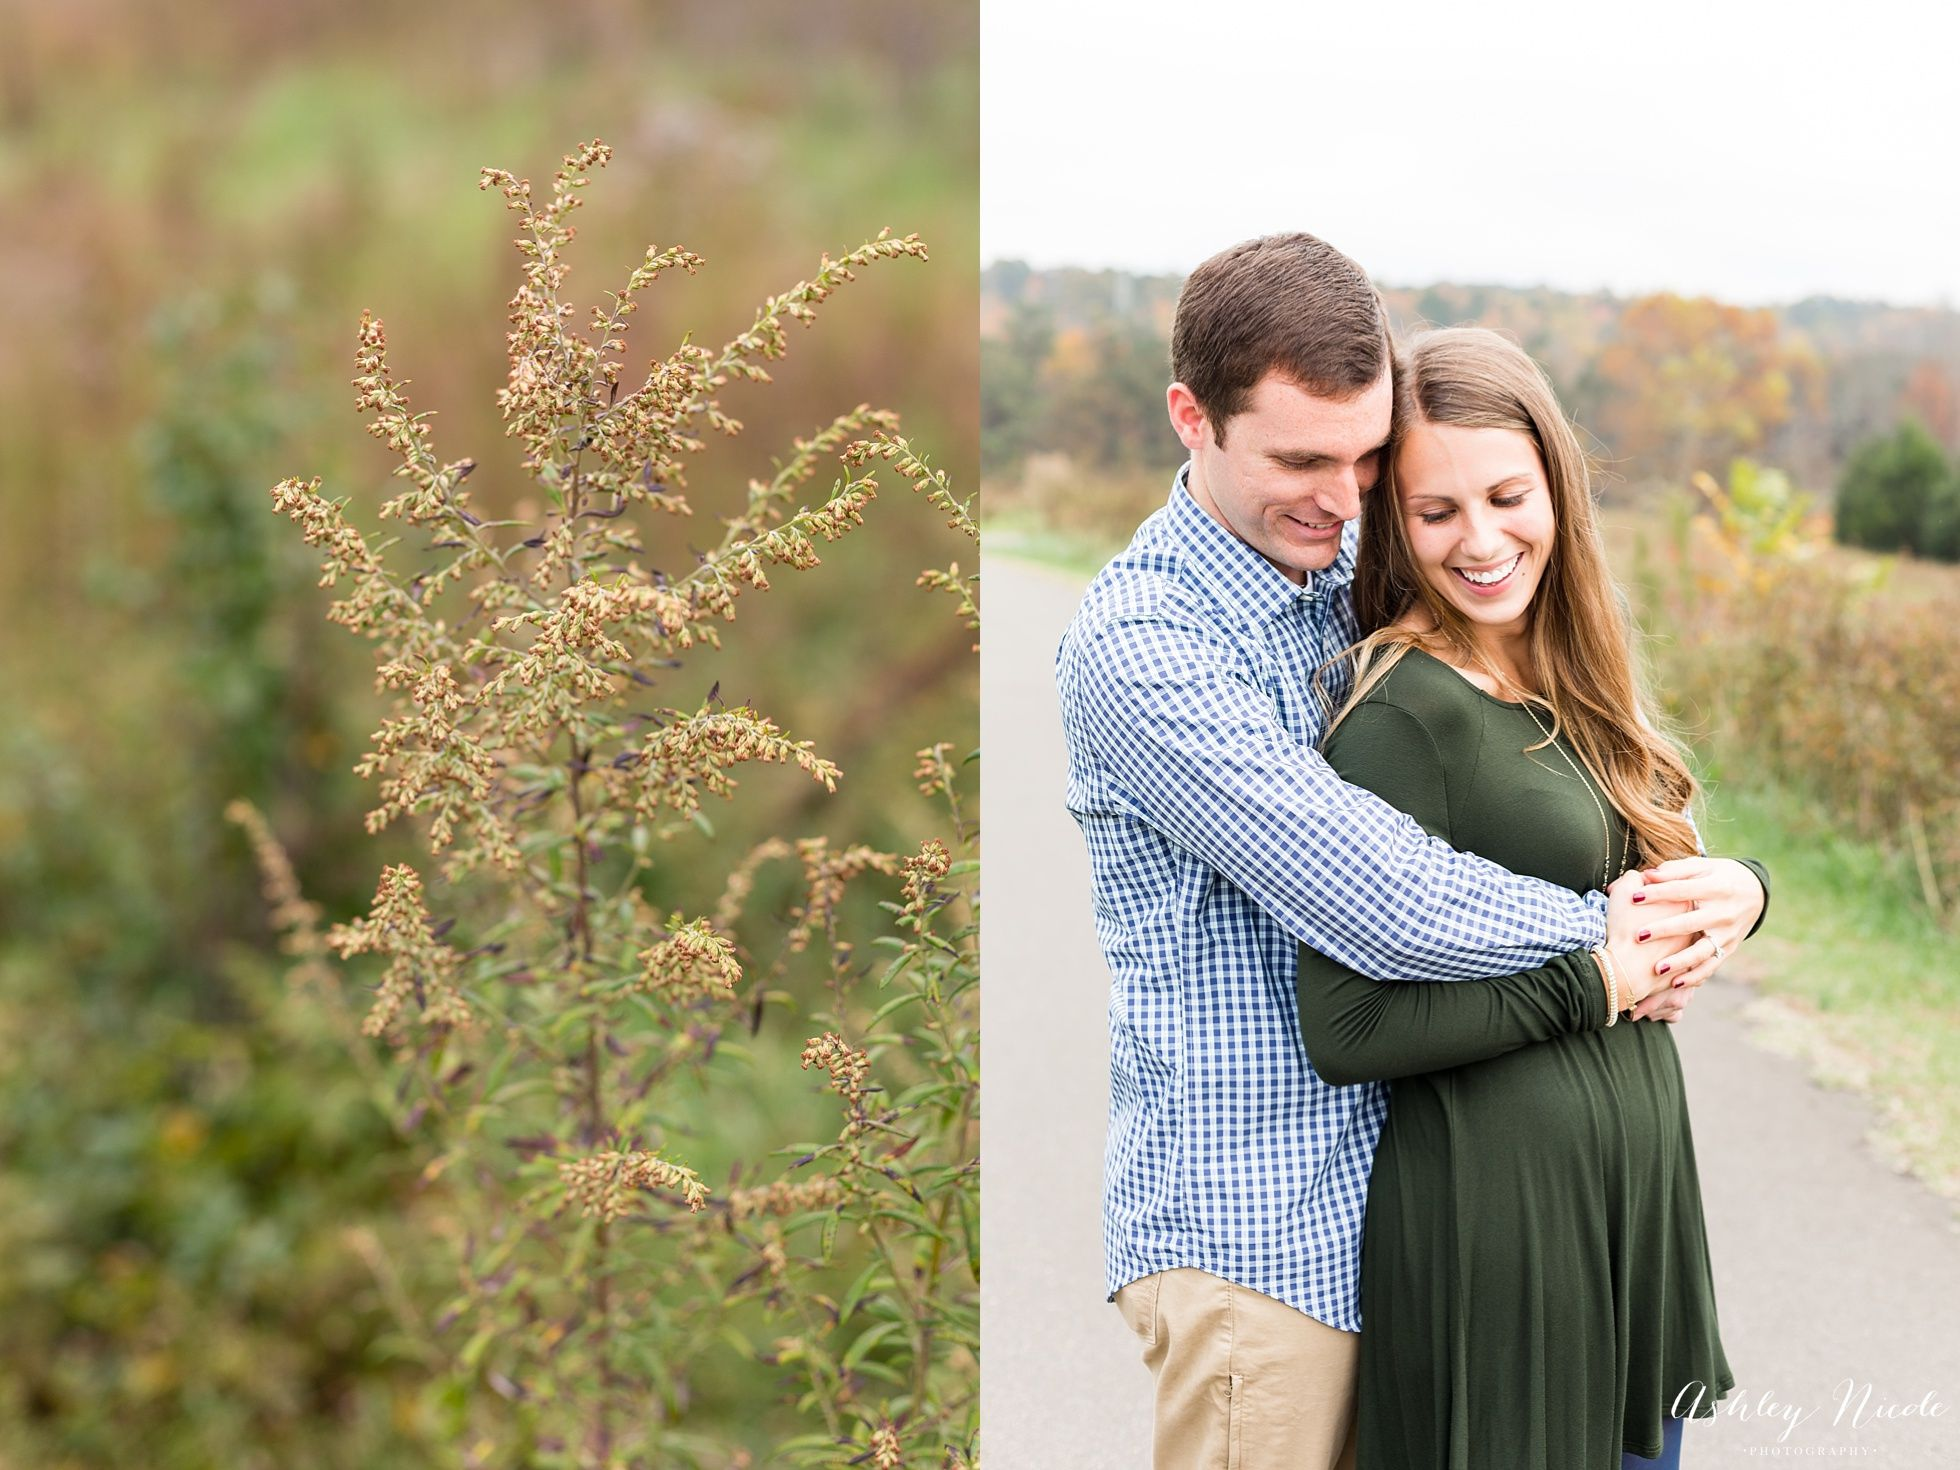 Joyner Park Fall Engagement Portraits | Couples poses | Posing ...